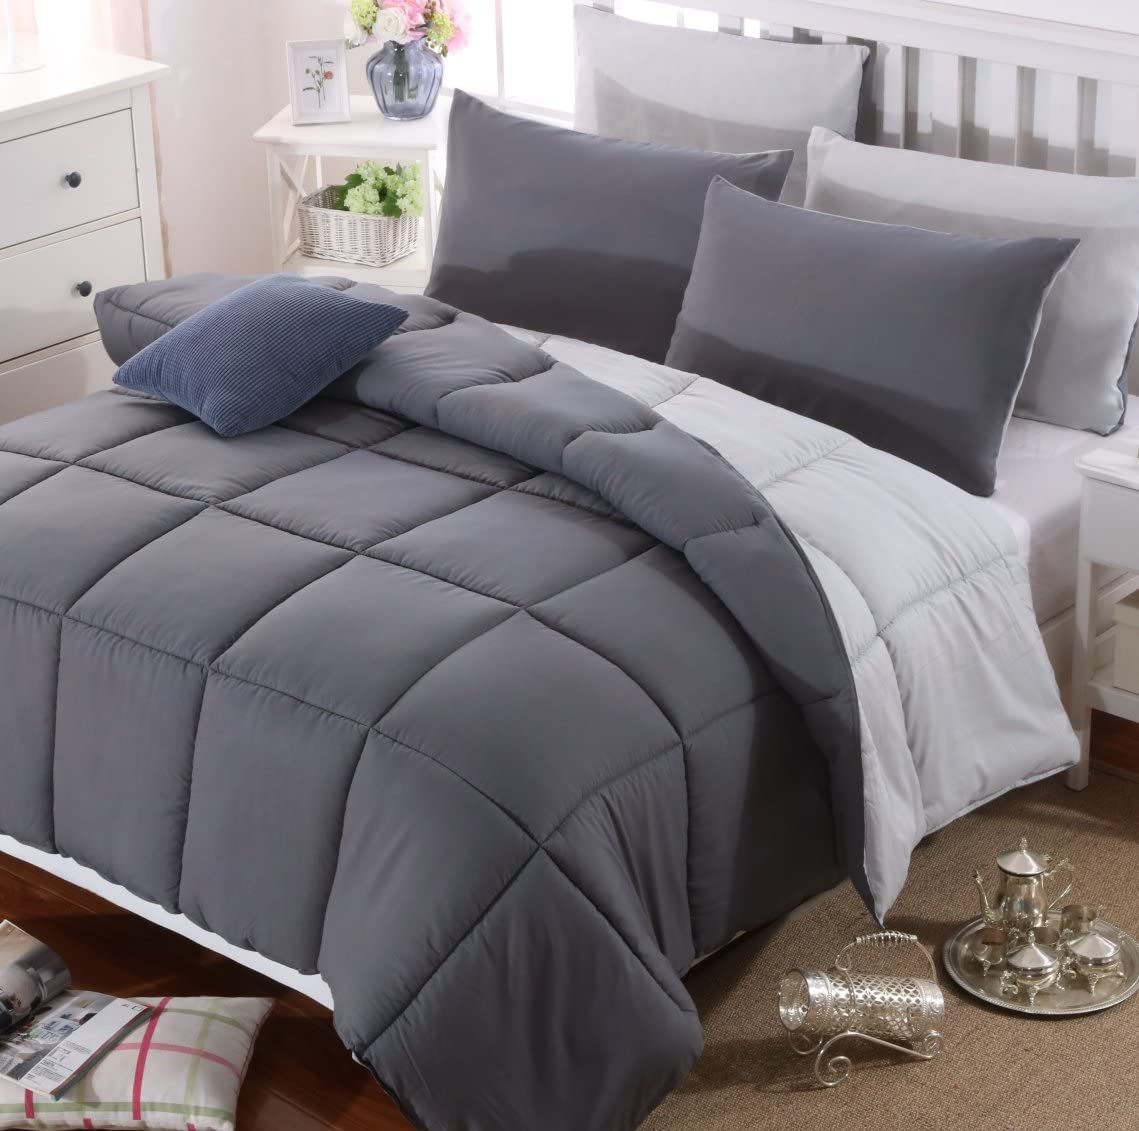 AYSW Duvet Double Comforter Warm and Anti Allergy All Season Dark Grey and Light Grey NO Pillowcases Only Quilt 10.5 Tog Duvet